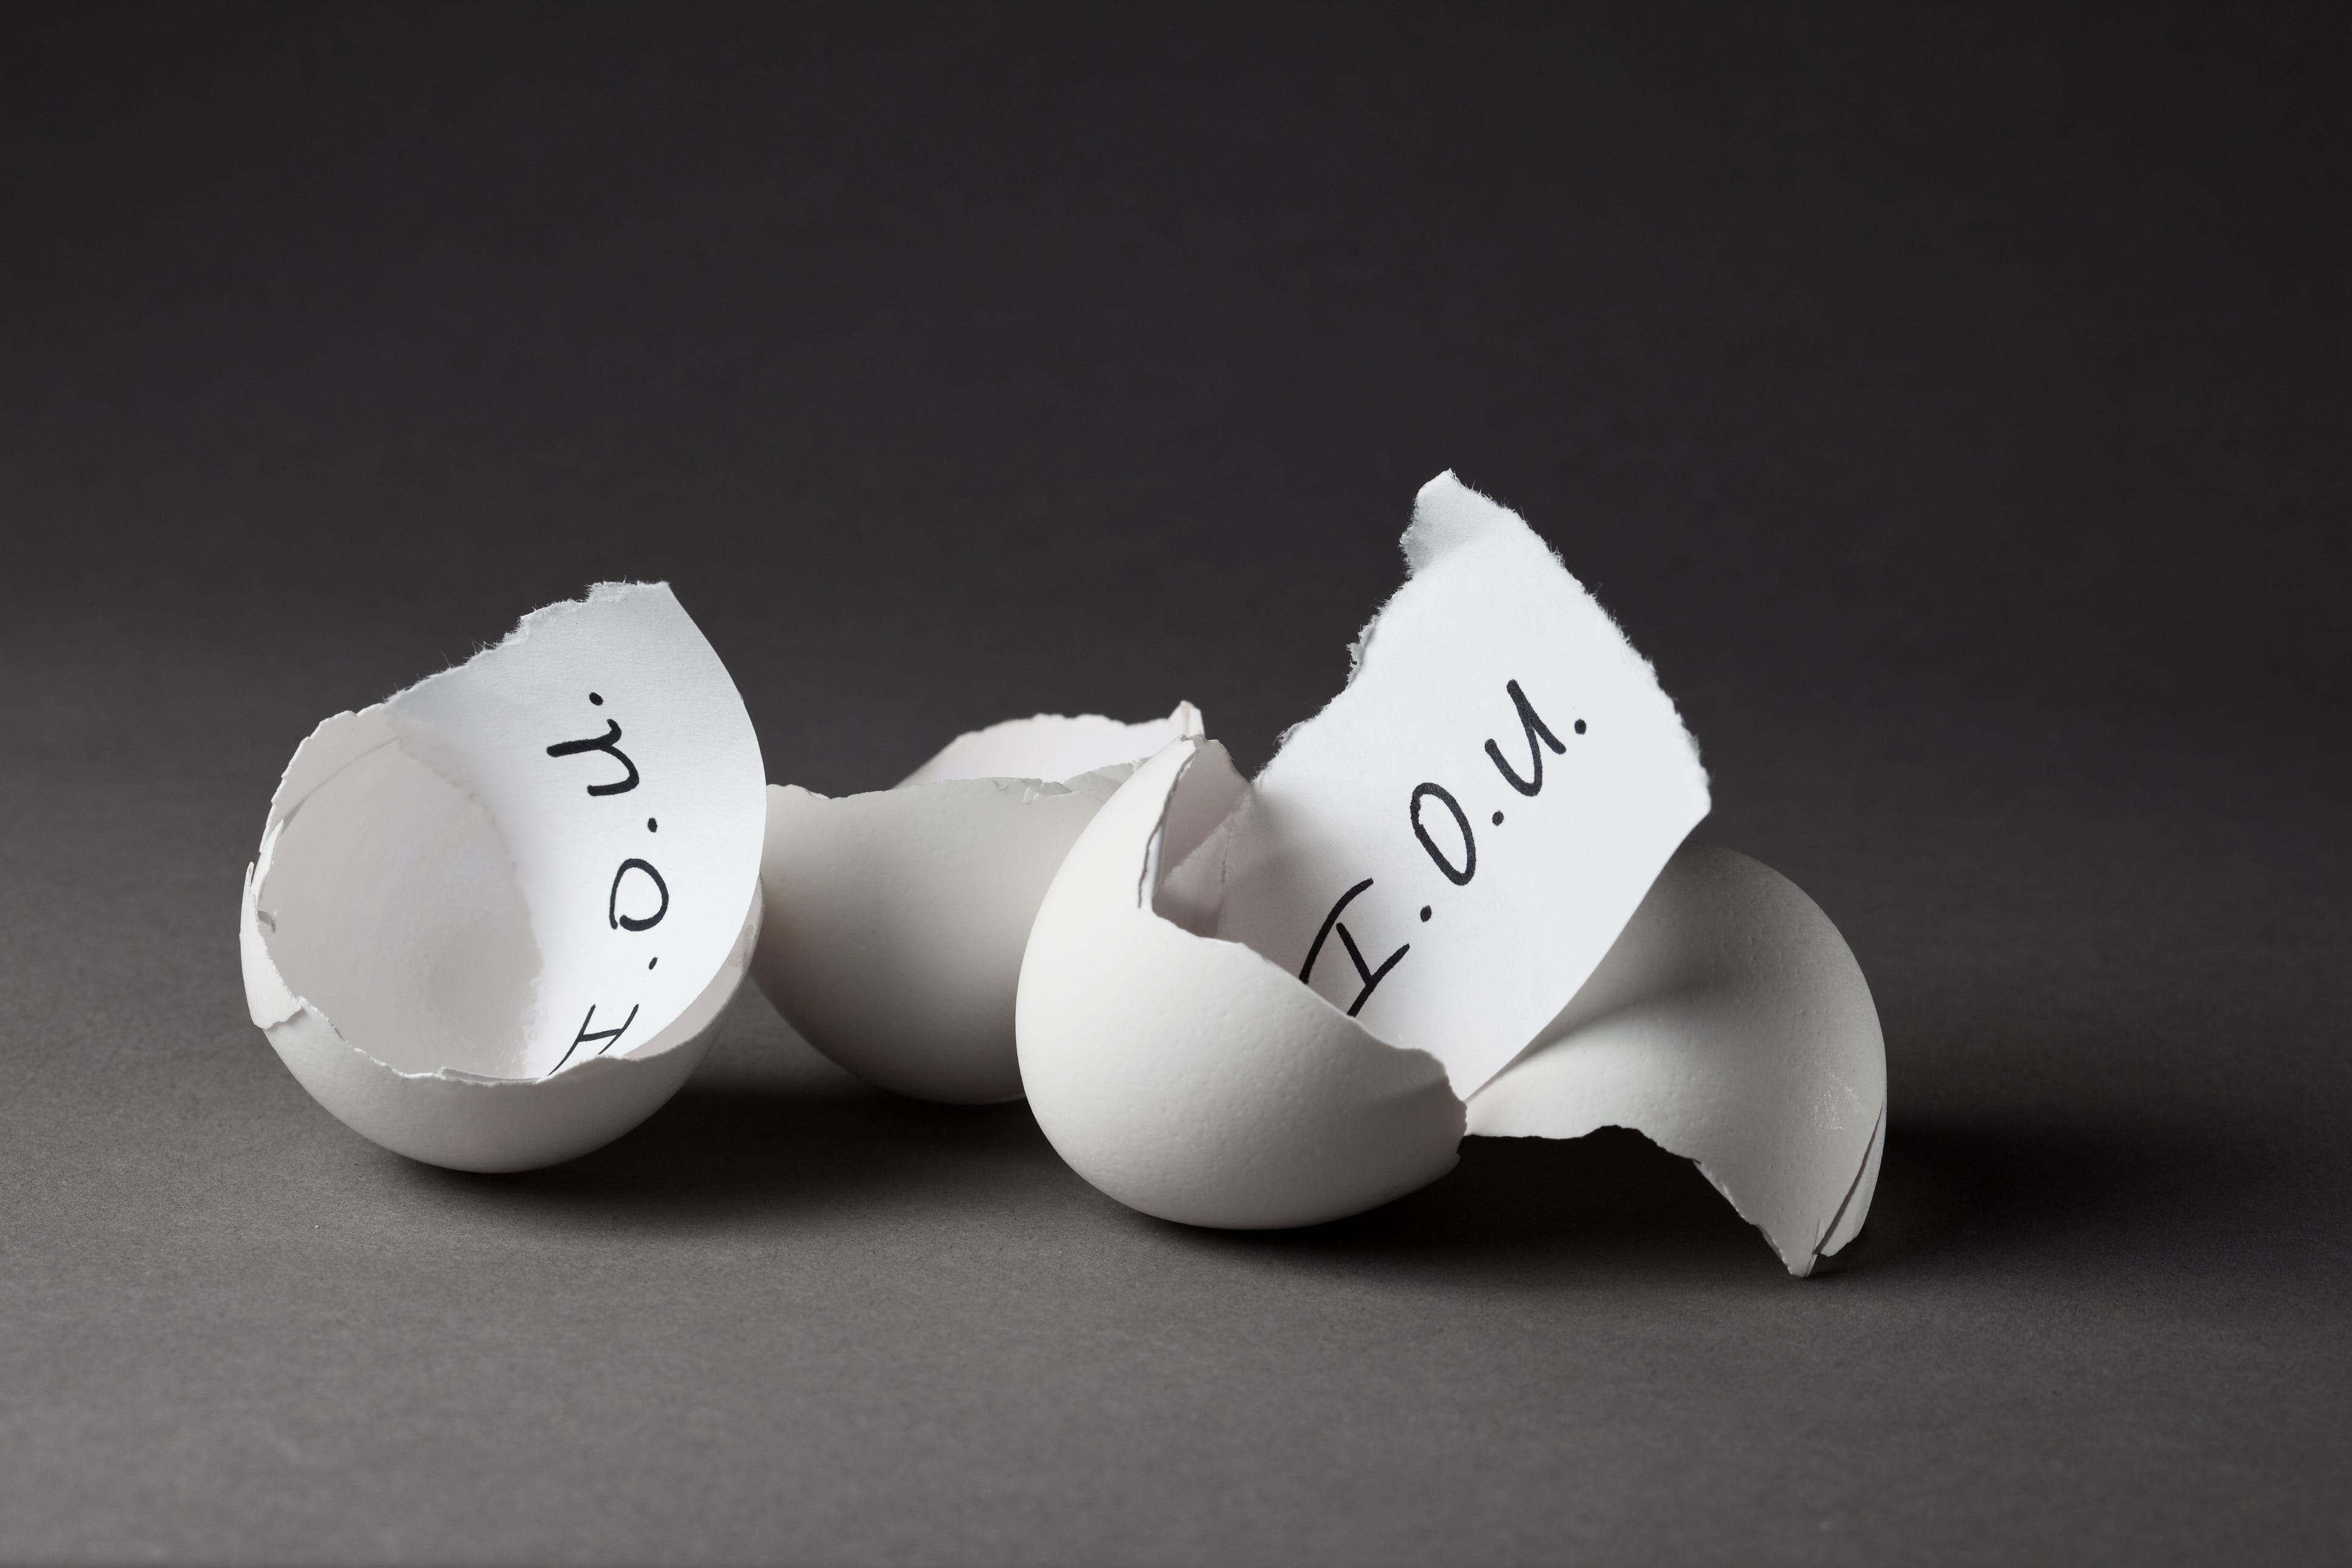 Questions to ask before borrowing from a 401(k)